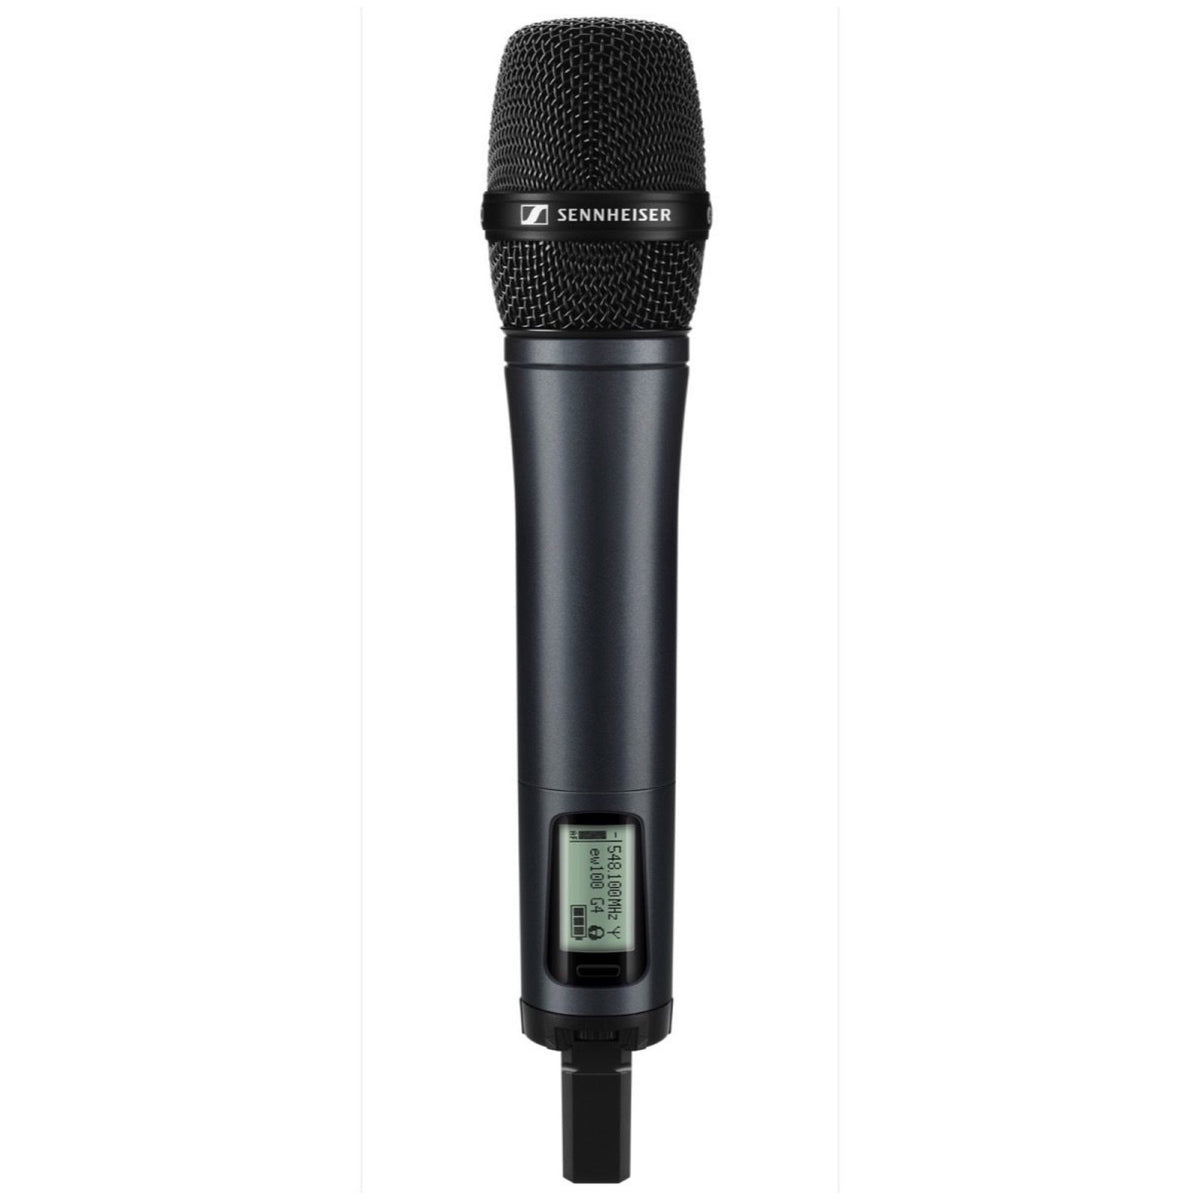 Sennheiser ew100 G4 e945 Vocal Wireless Microphone System, Band A (516-558 MHz)